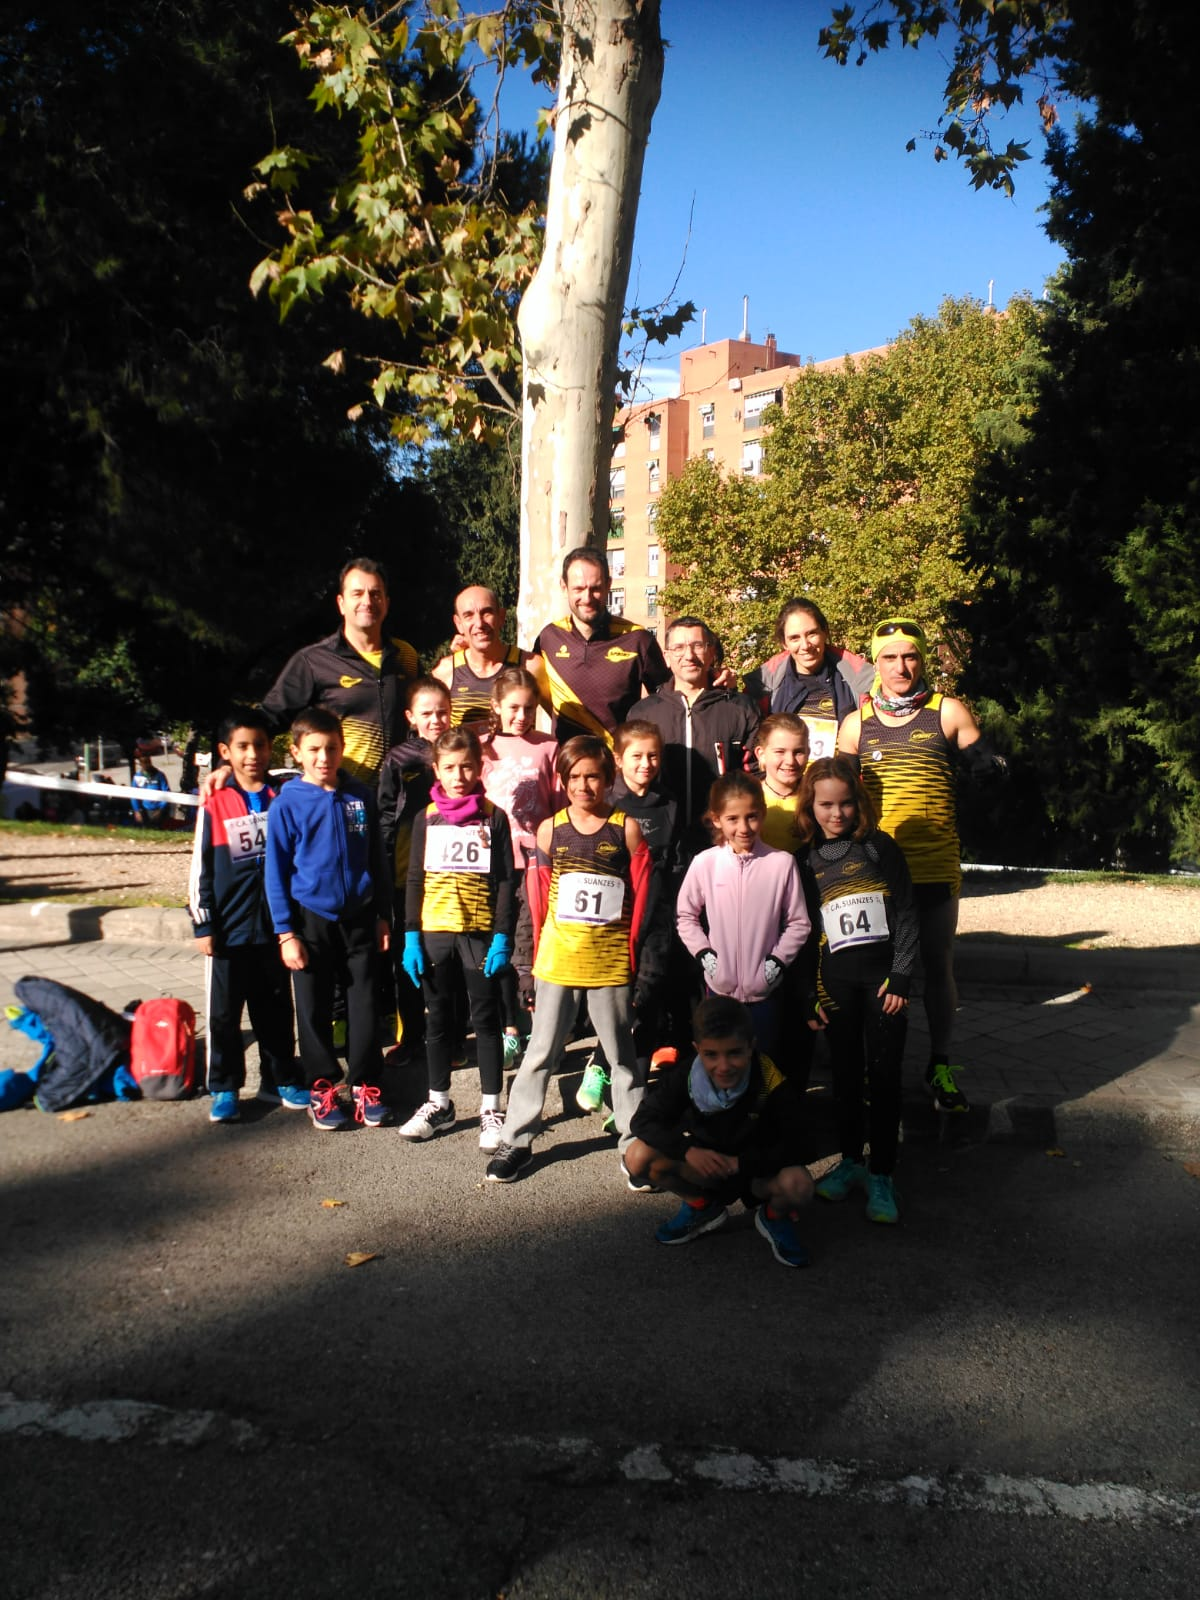 A.D. SPRINT EN EL CROSS CLUB ATLETISMO SUANZES – CTO. DE MADRID CROSS CORTO MASTER